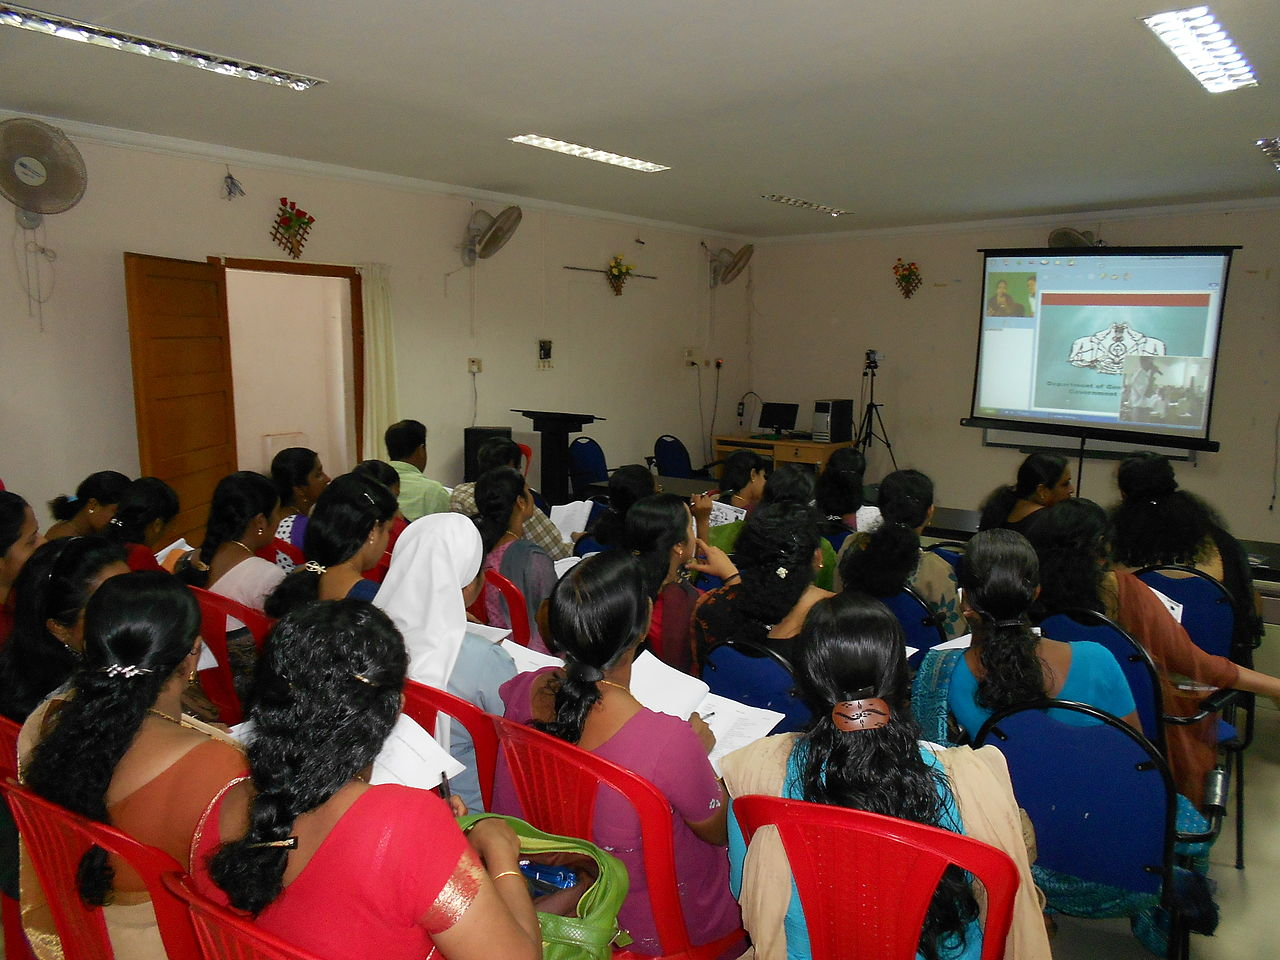 A video conference class for English teachers in Kollam. Photo credit: Foto Kannan via Wikimedia Commons [Licensed under CC-BY-SA-3.0]